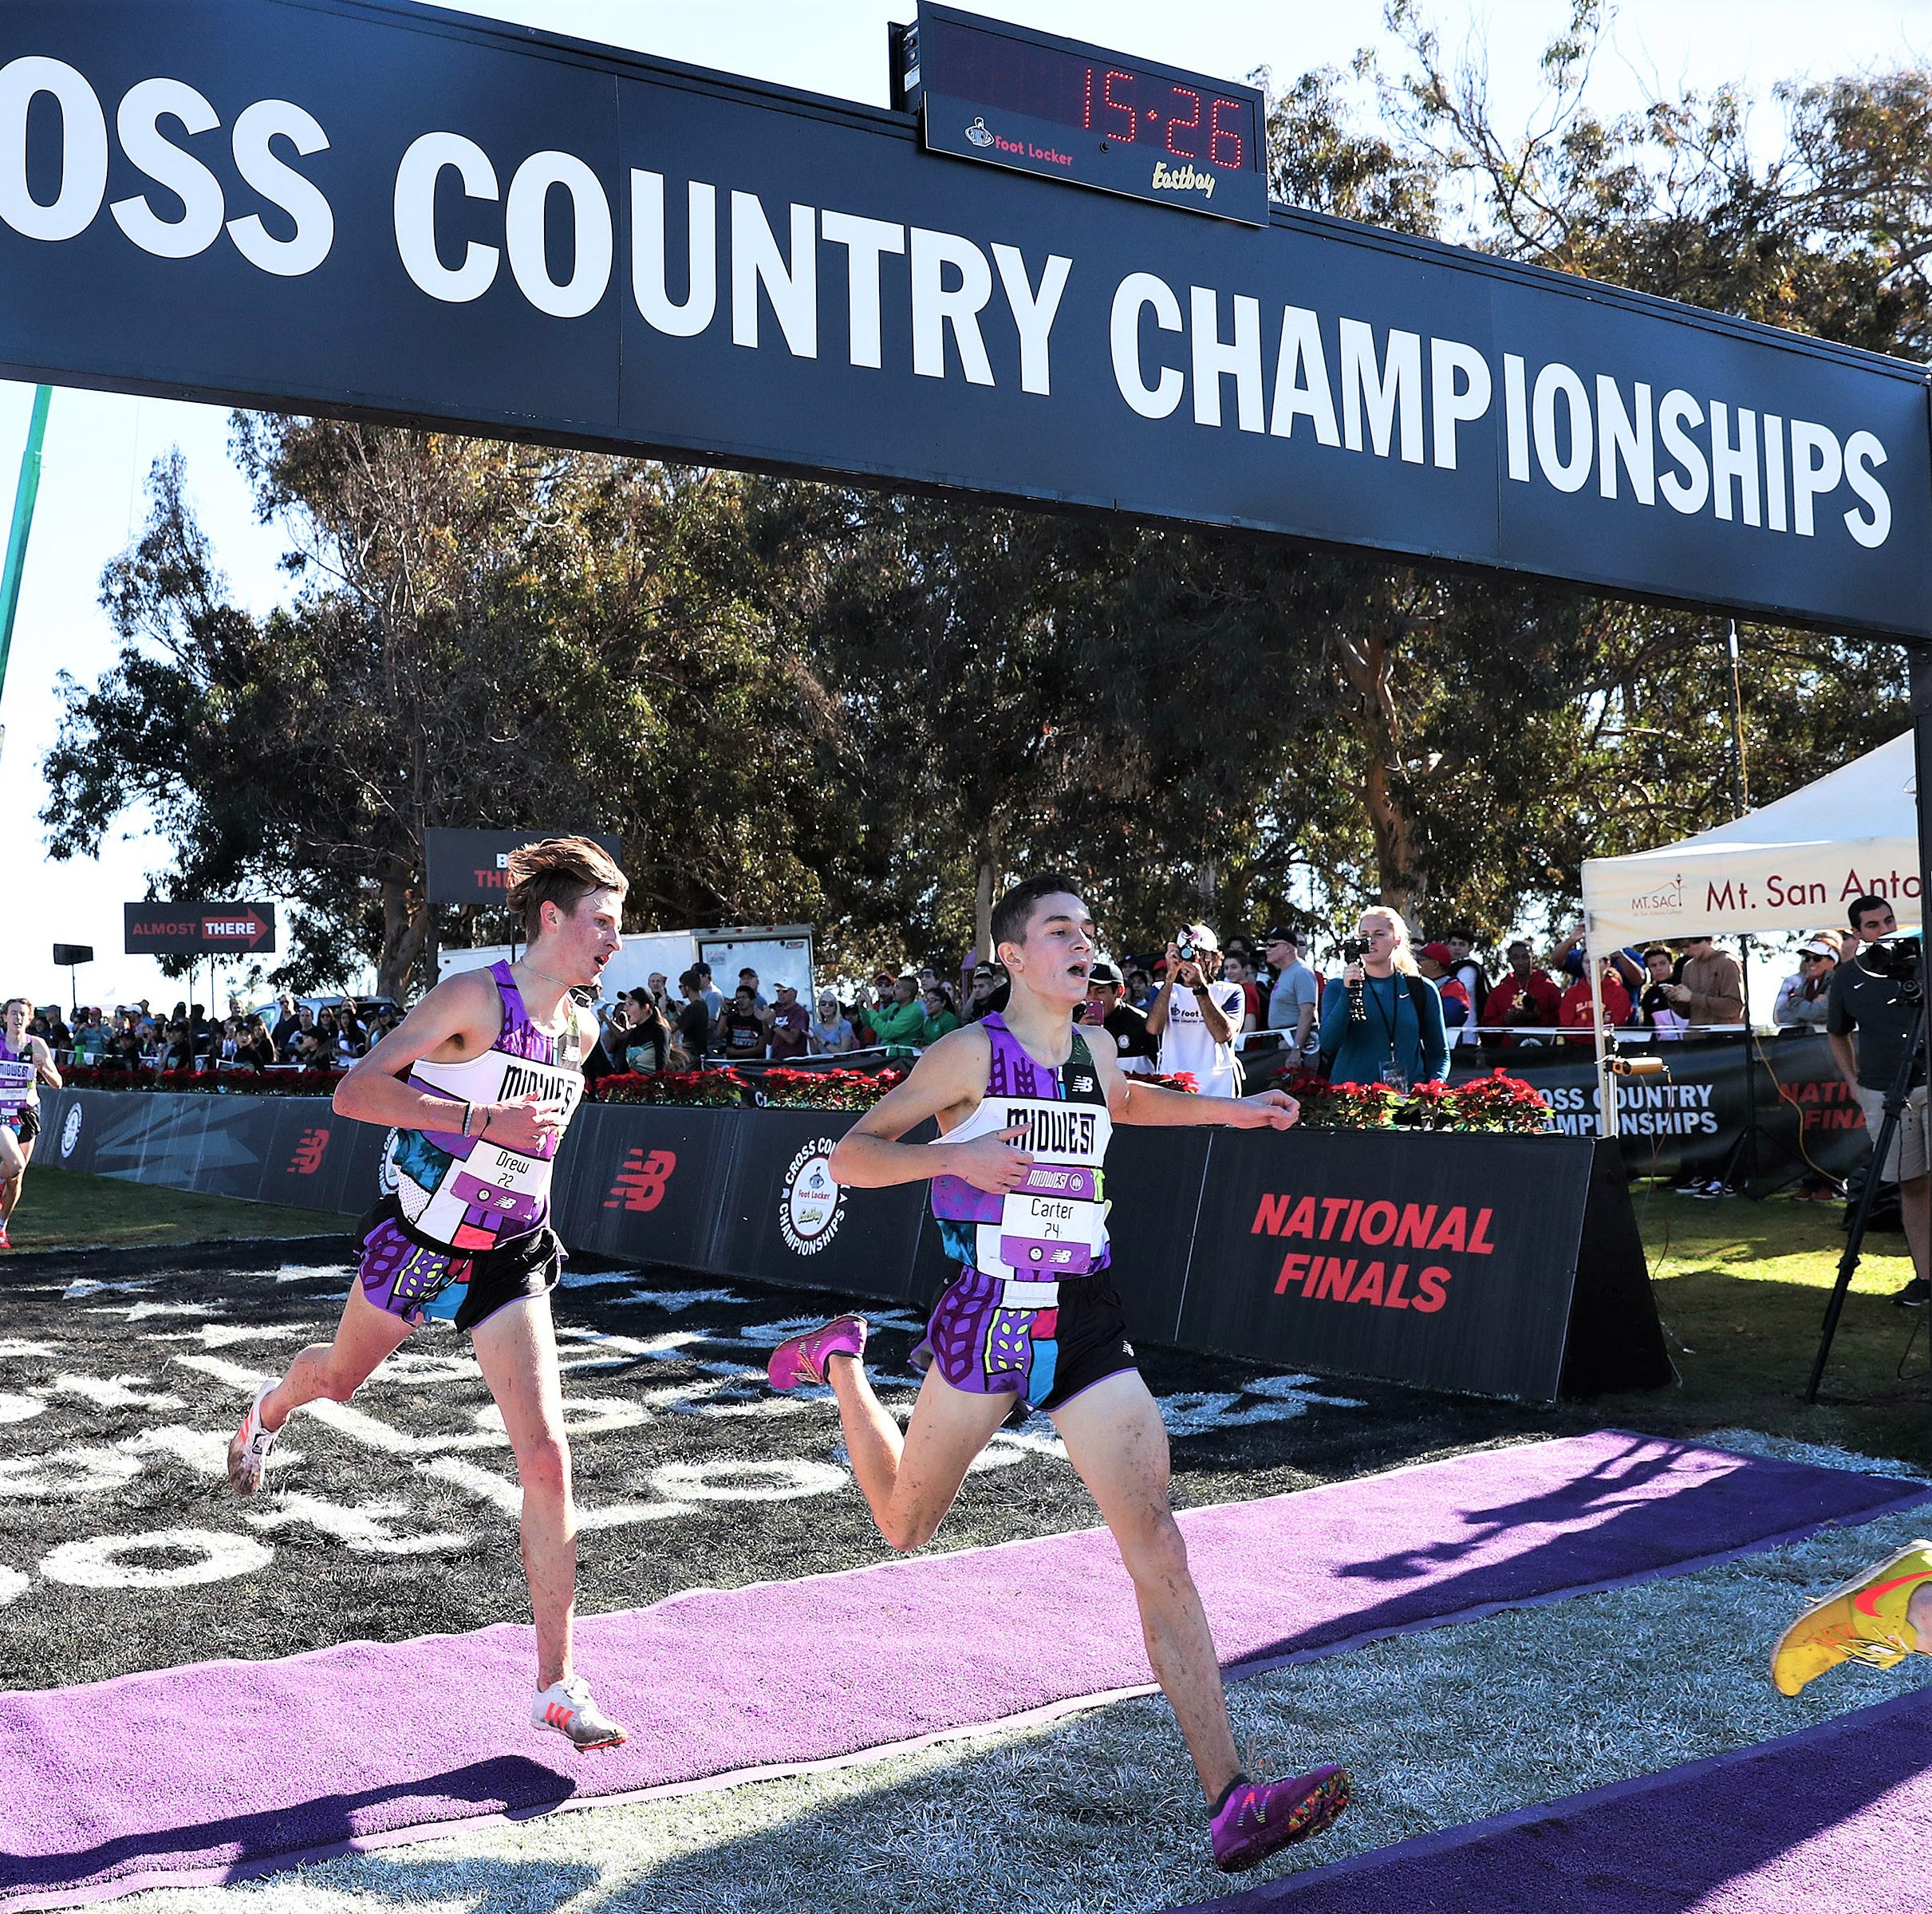 Plymouth High's Solomon fourth in Foot Locker National Championship